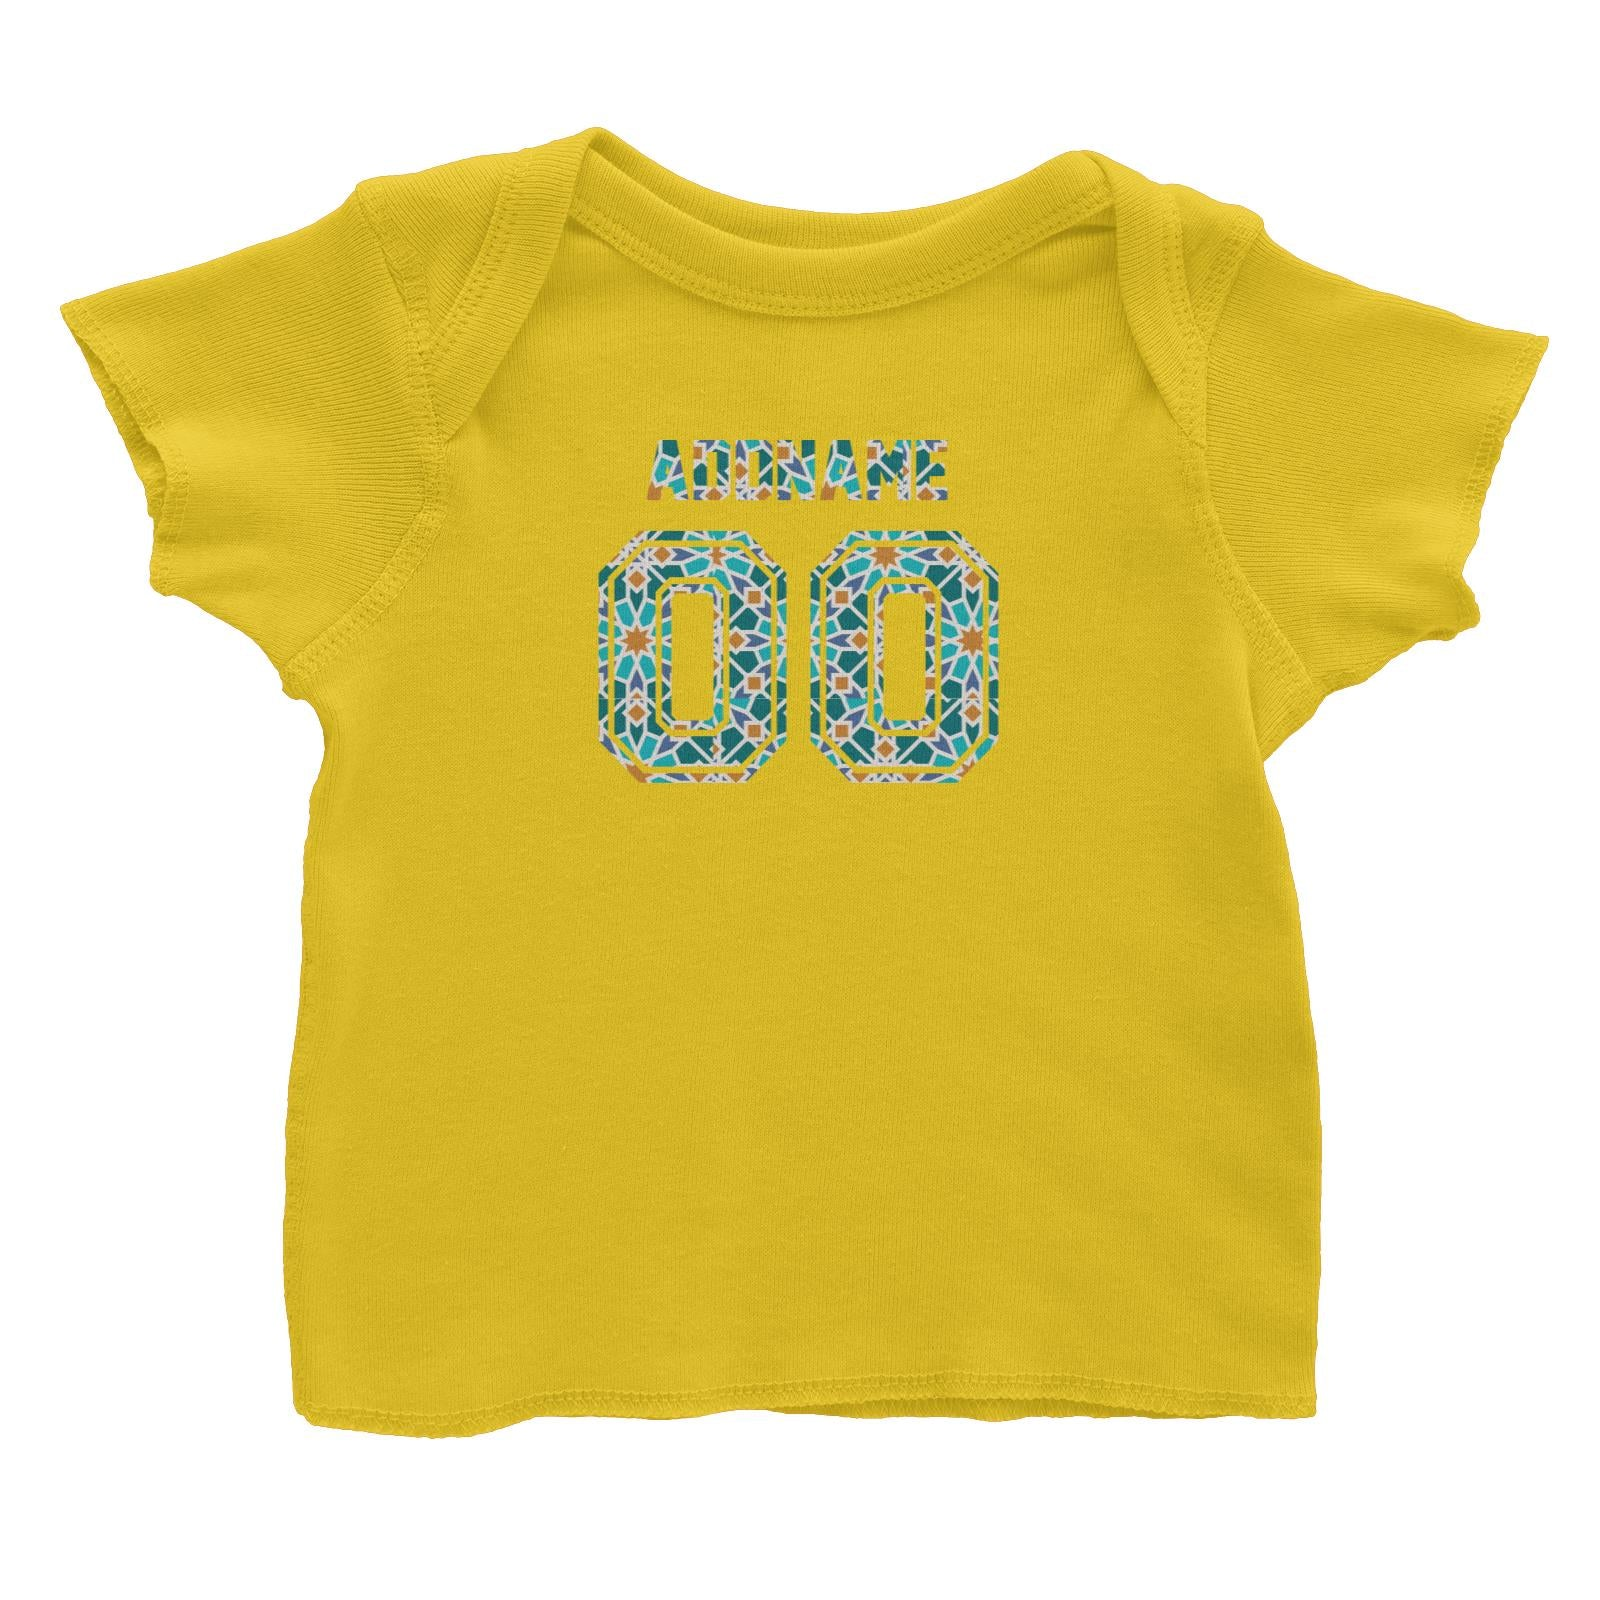 Jersey Islamic Pattern Baby T-Shirt Raya Personalizable Designs